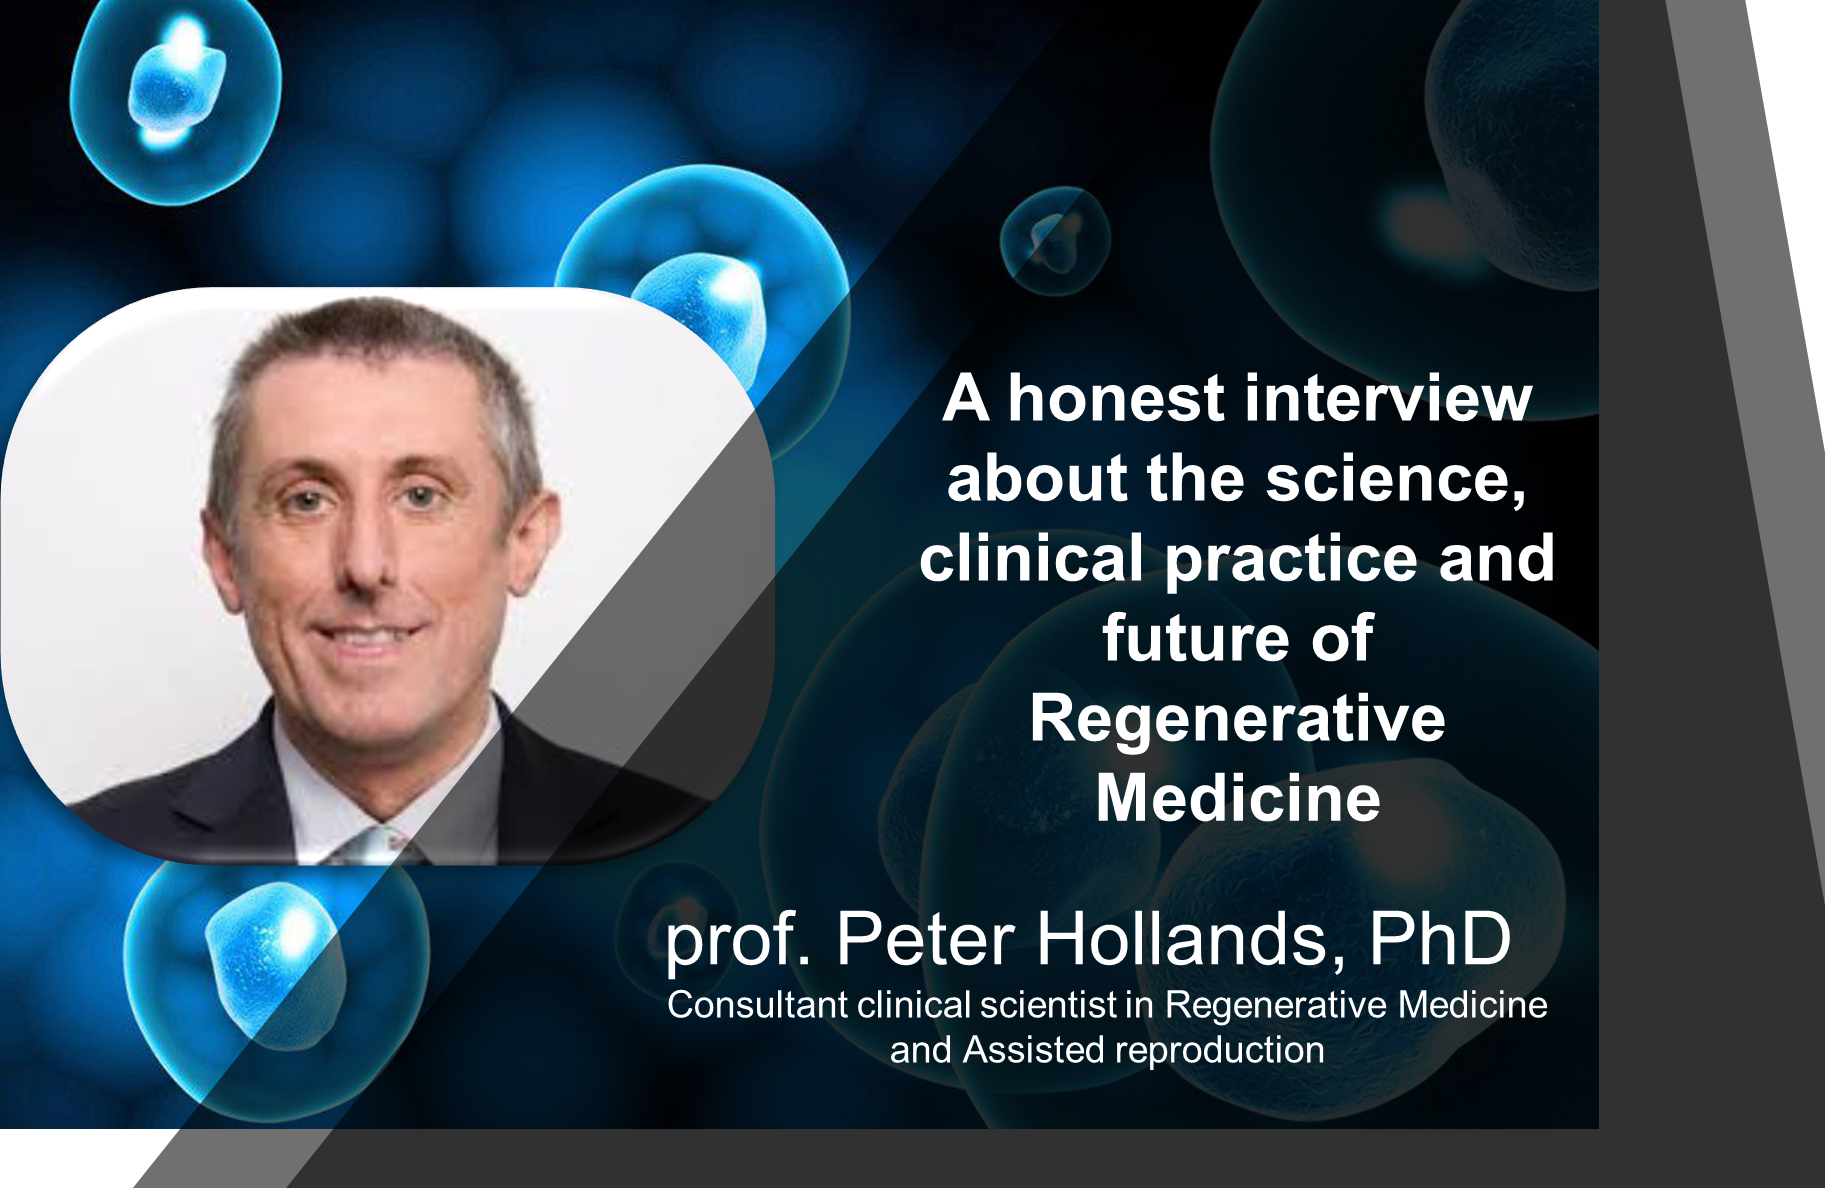 Interview with UK prof. Peter Hollands, PhD – Consultant clinical scientist in Regenerative Medicine and Assisted reproduction